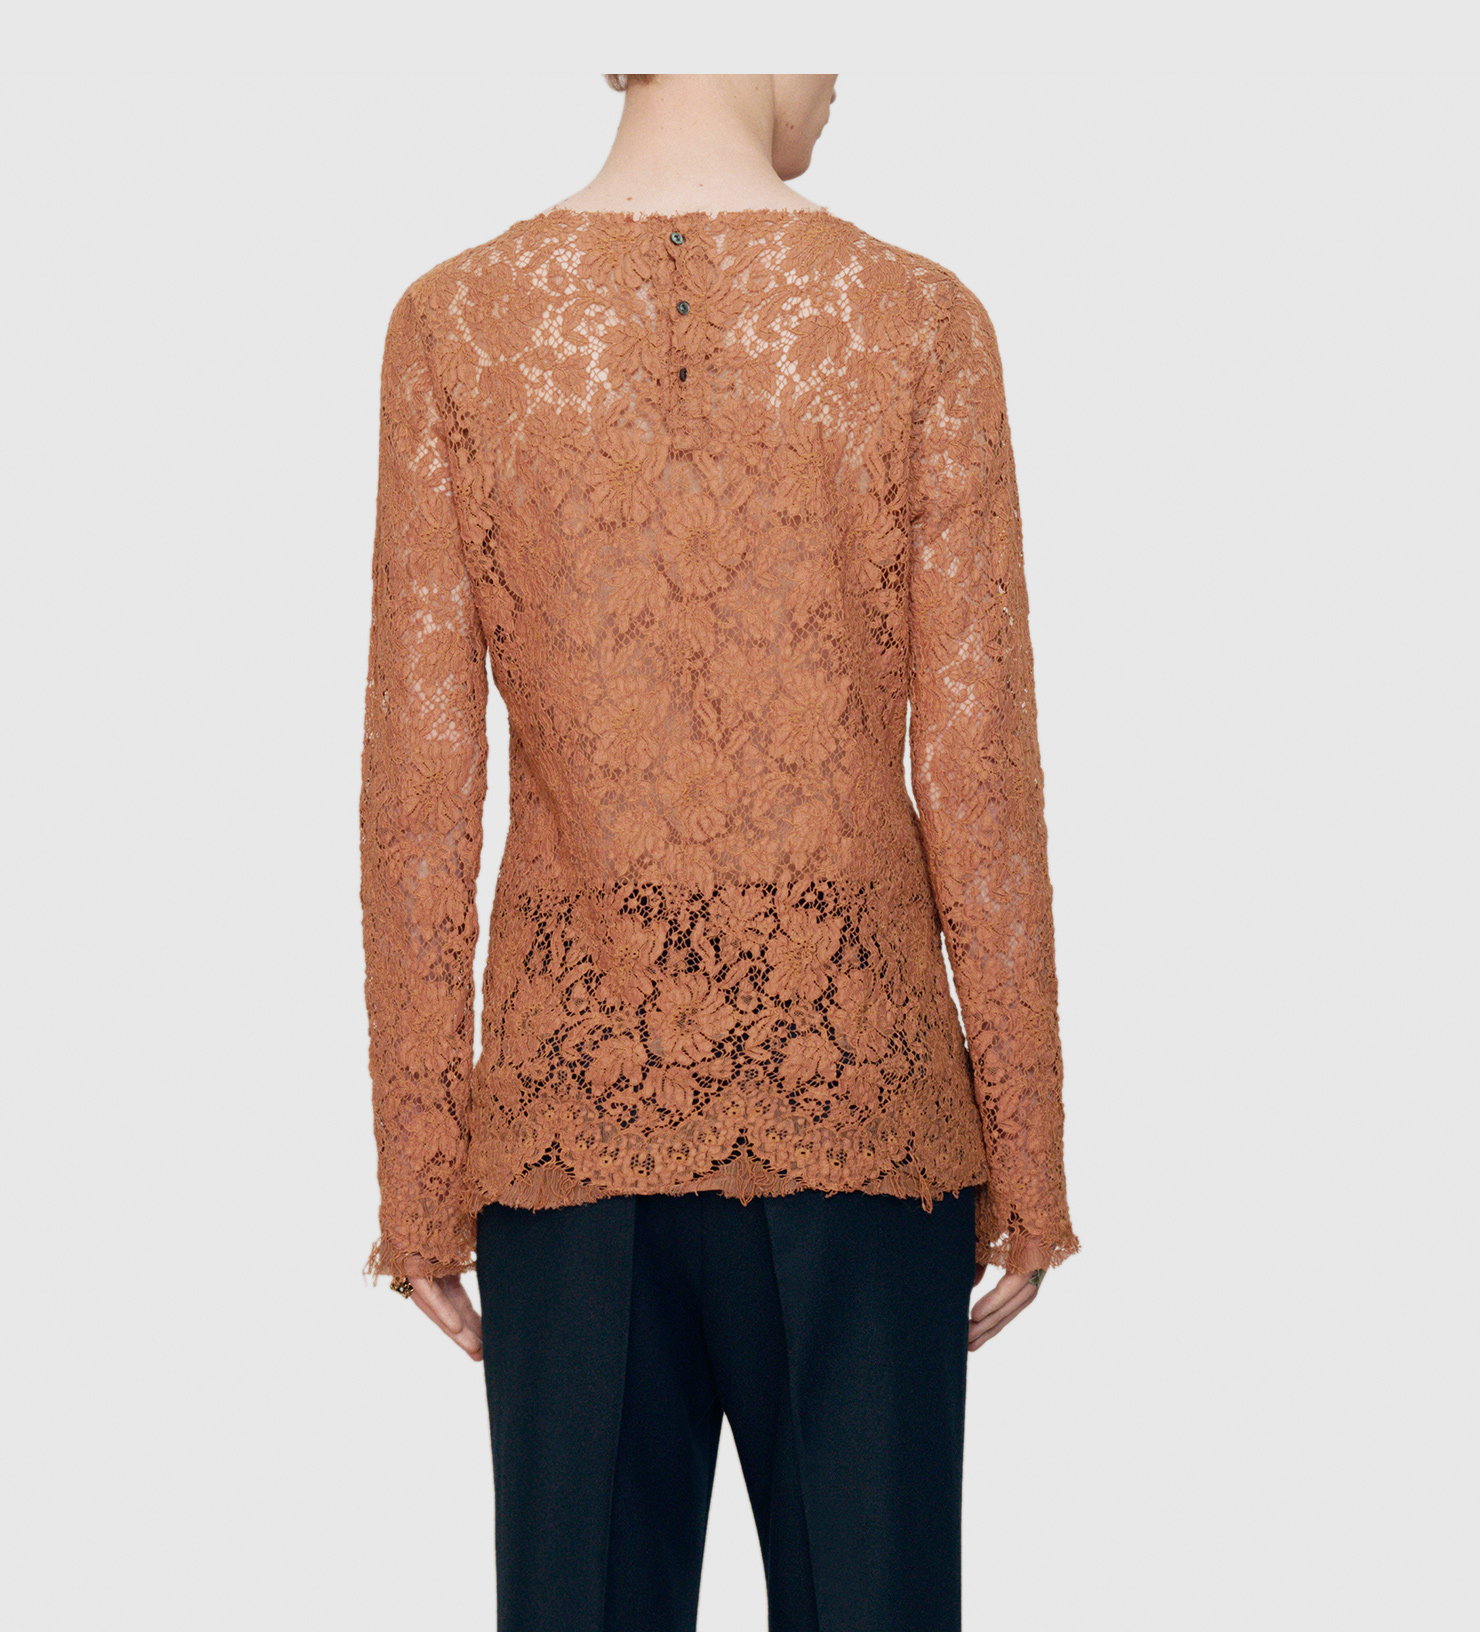 lyst gucci cotton lace shirt in brown for men